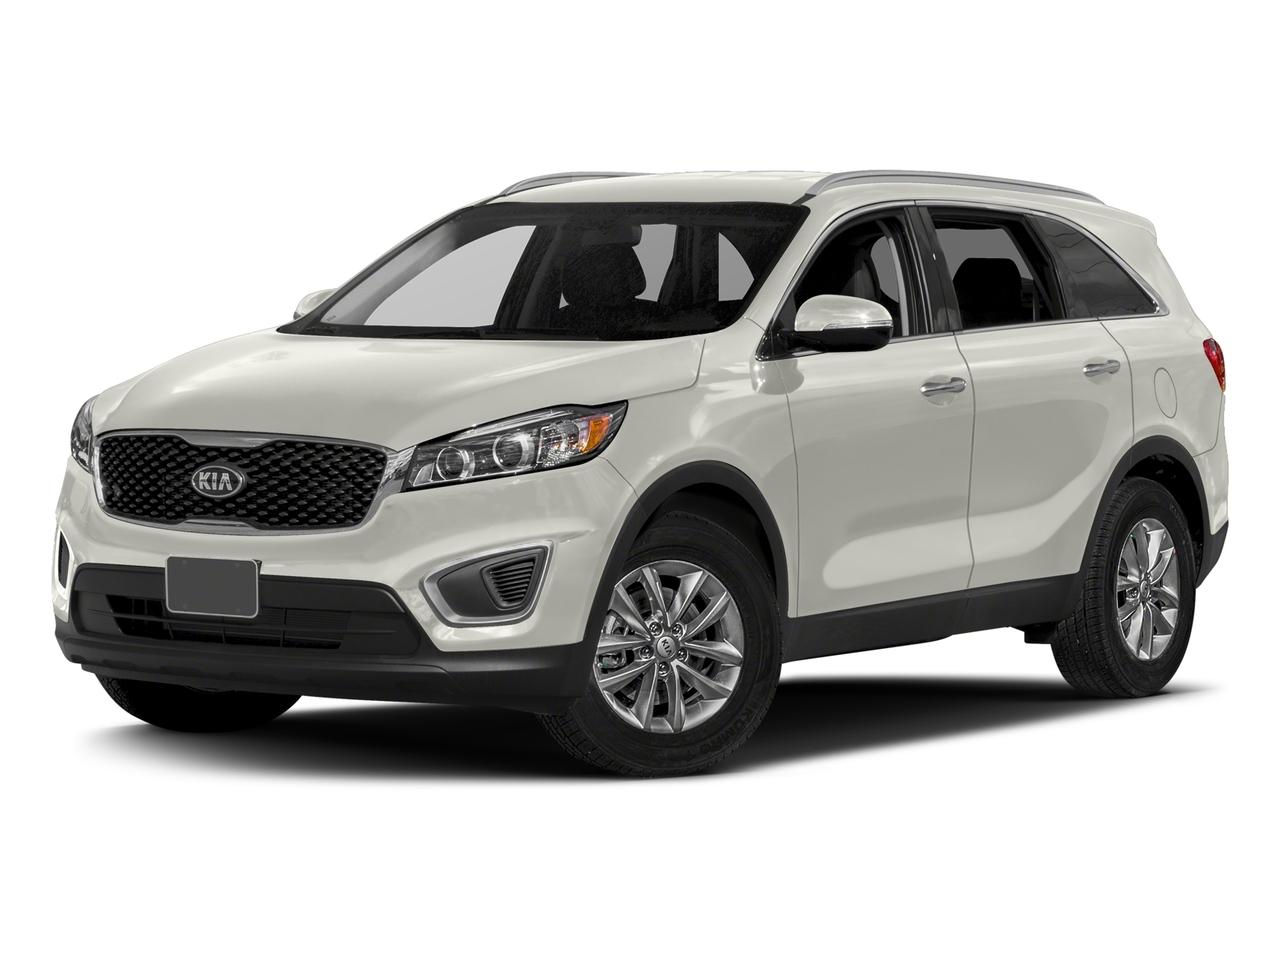 2018 Kia Sorento Vehicle Photo in Zelienople, PA 16063